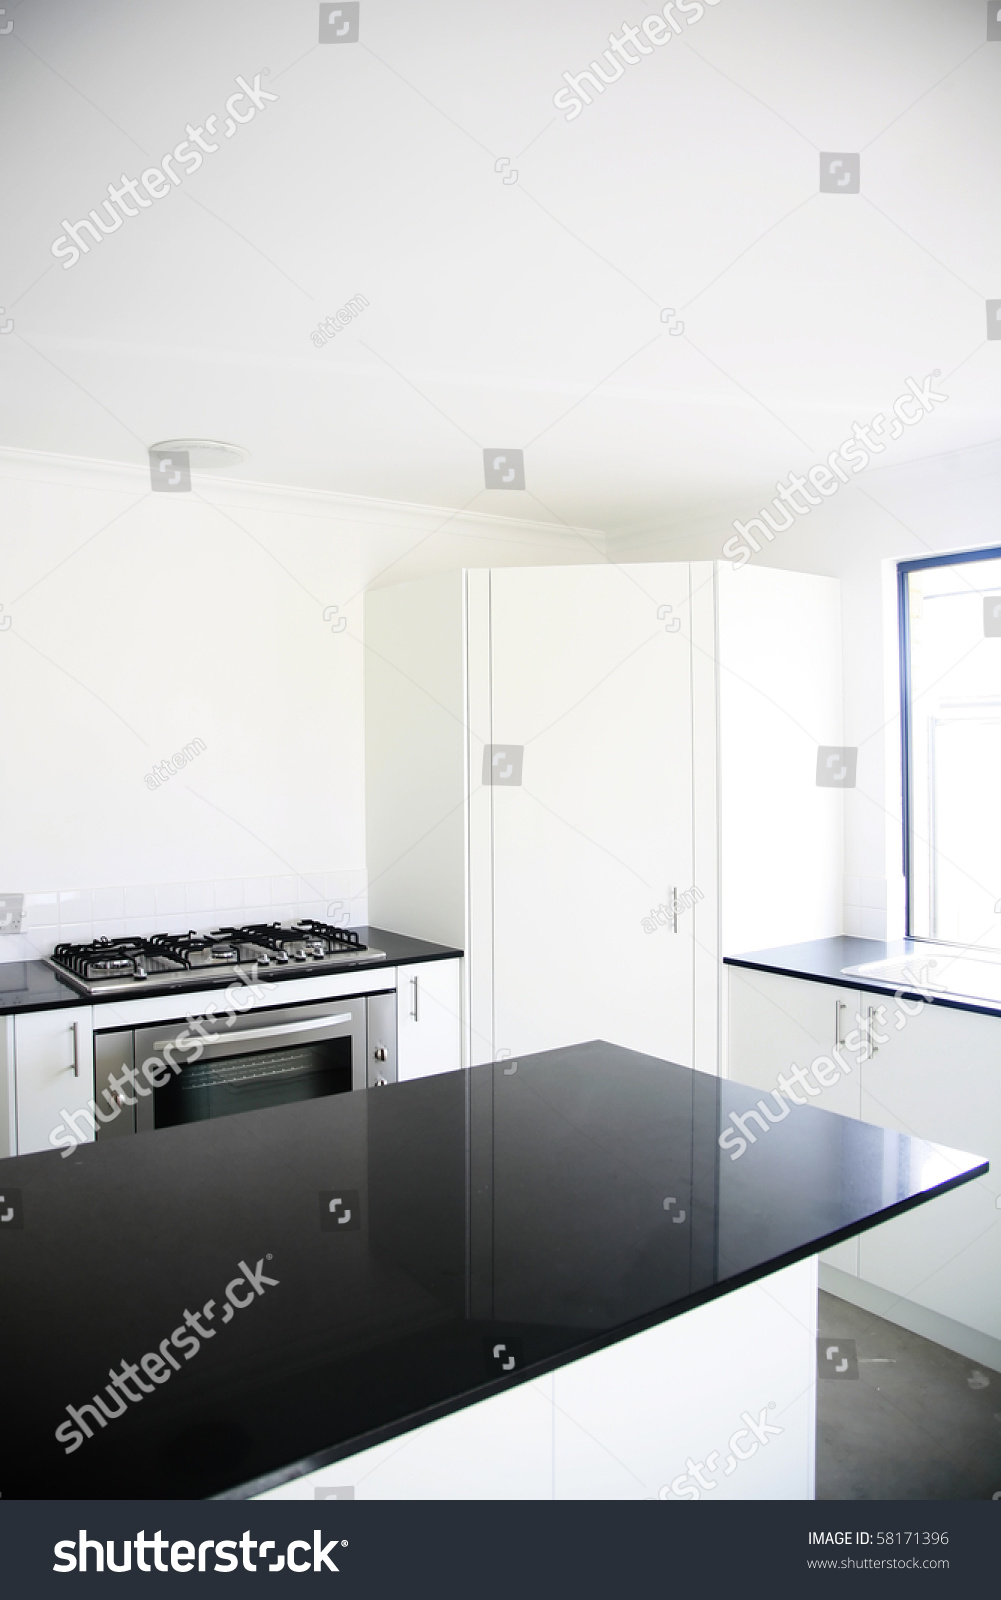 Interior Design Kitchen Black Benchtop White Royalty Free Stock